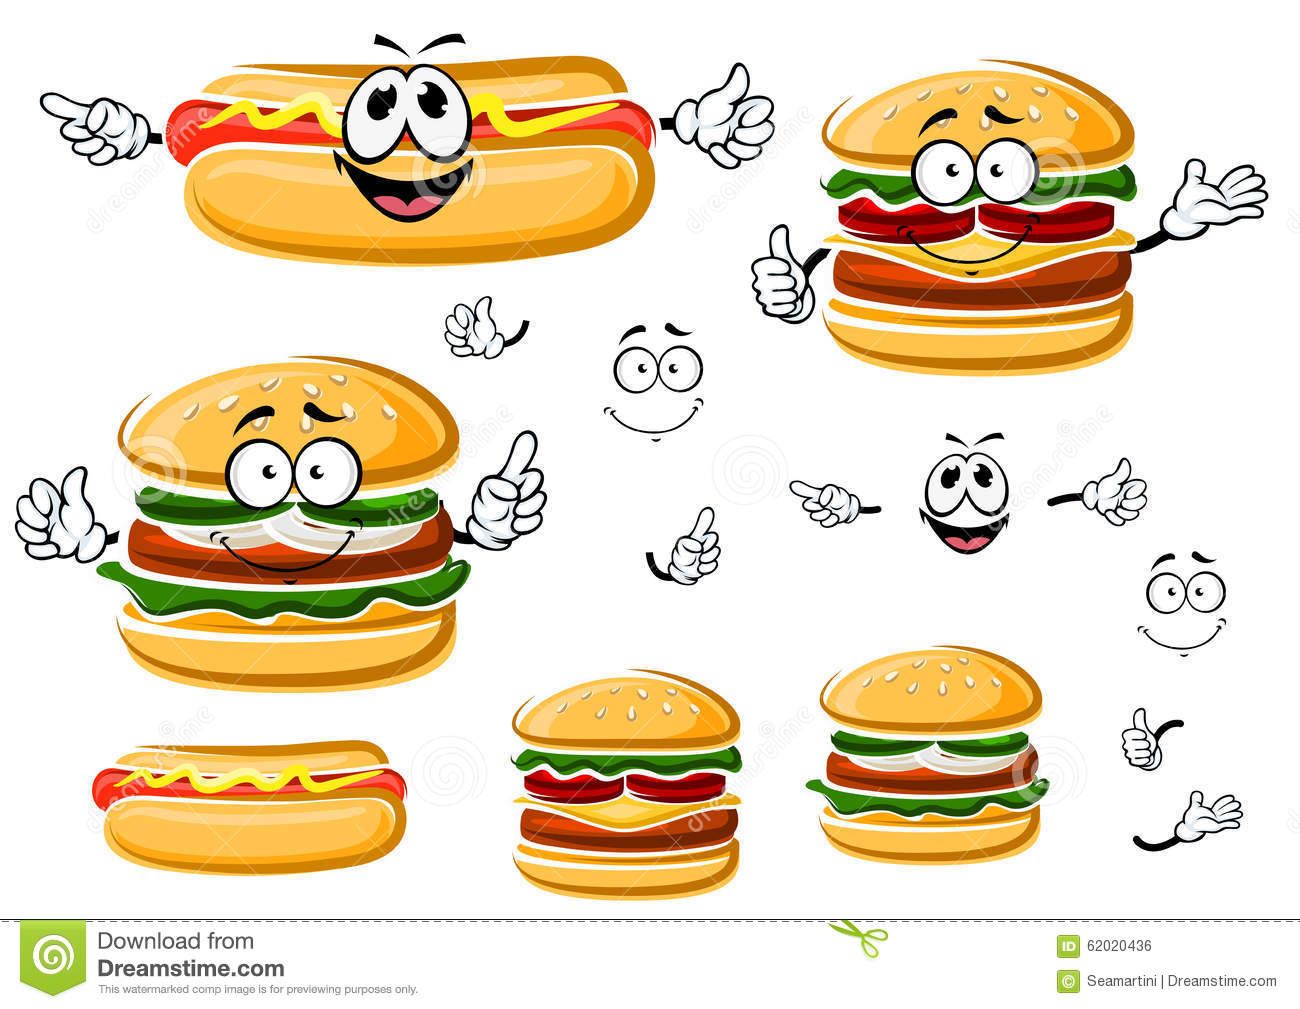 the fast food industry happy or By 2022, mcdonald's will make improvements to the happy meal  leverage  innovative marketing to help increase purchase of foods and.